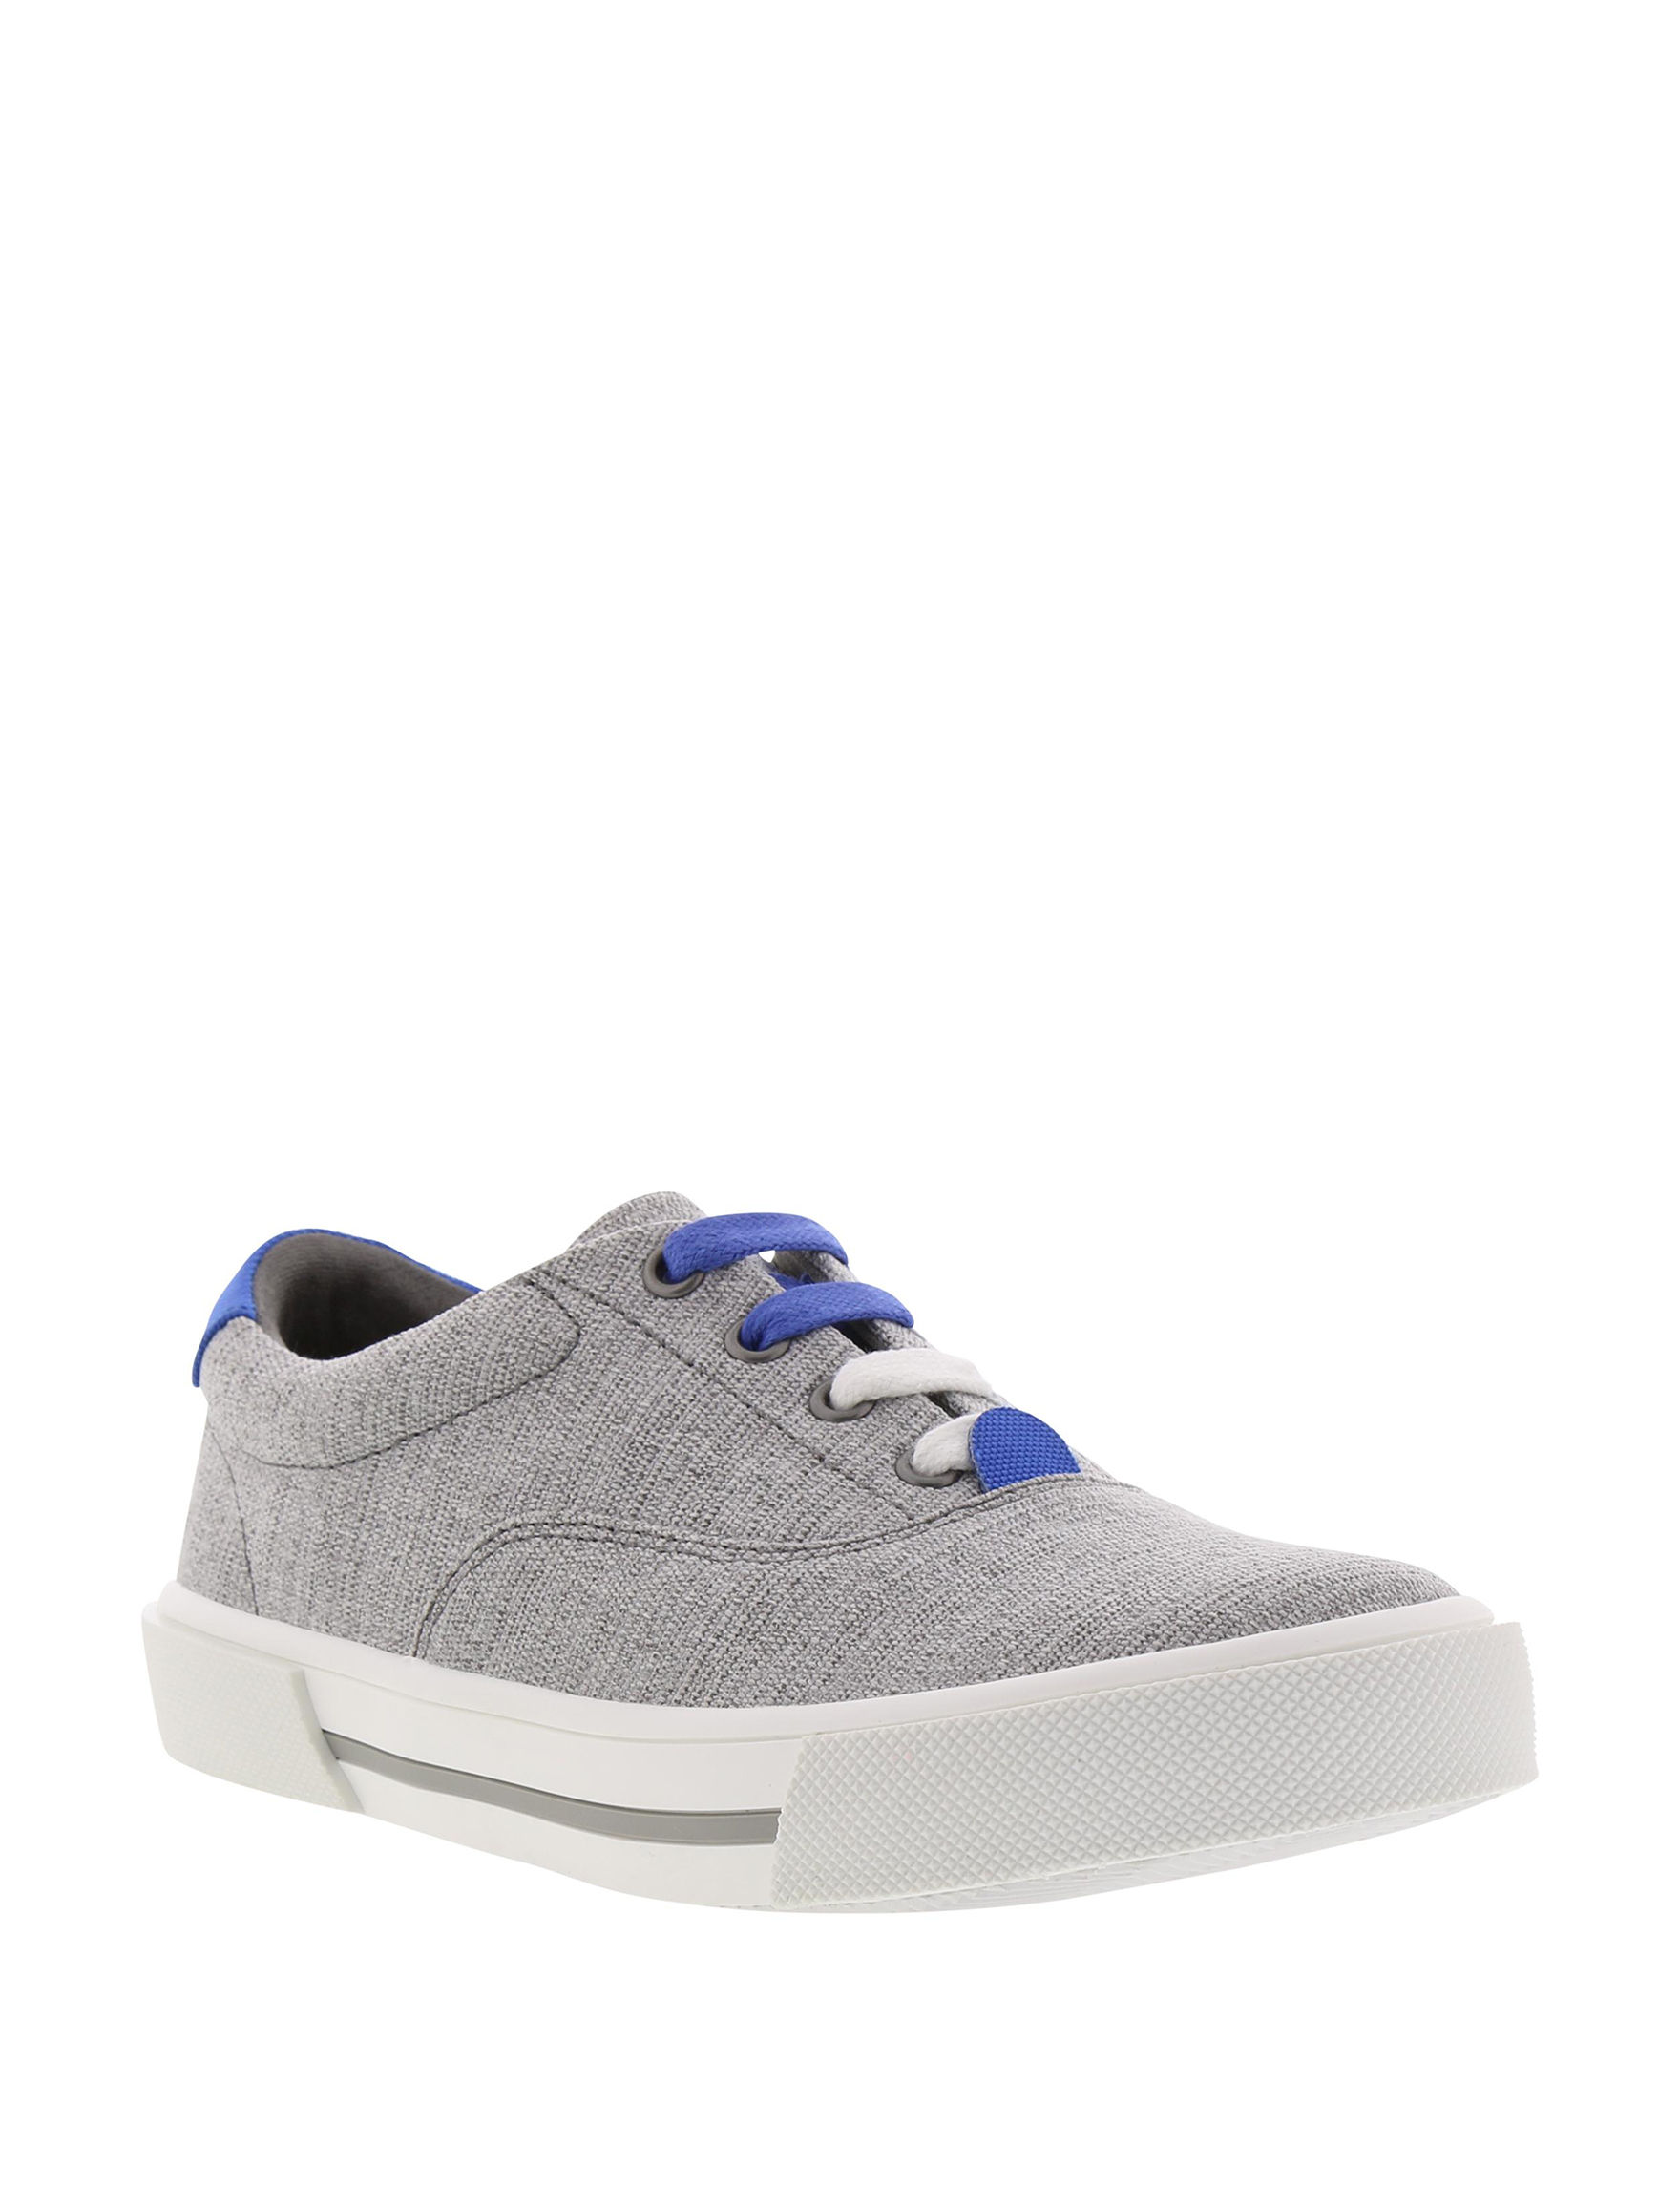 Kenneth Cole Grey